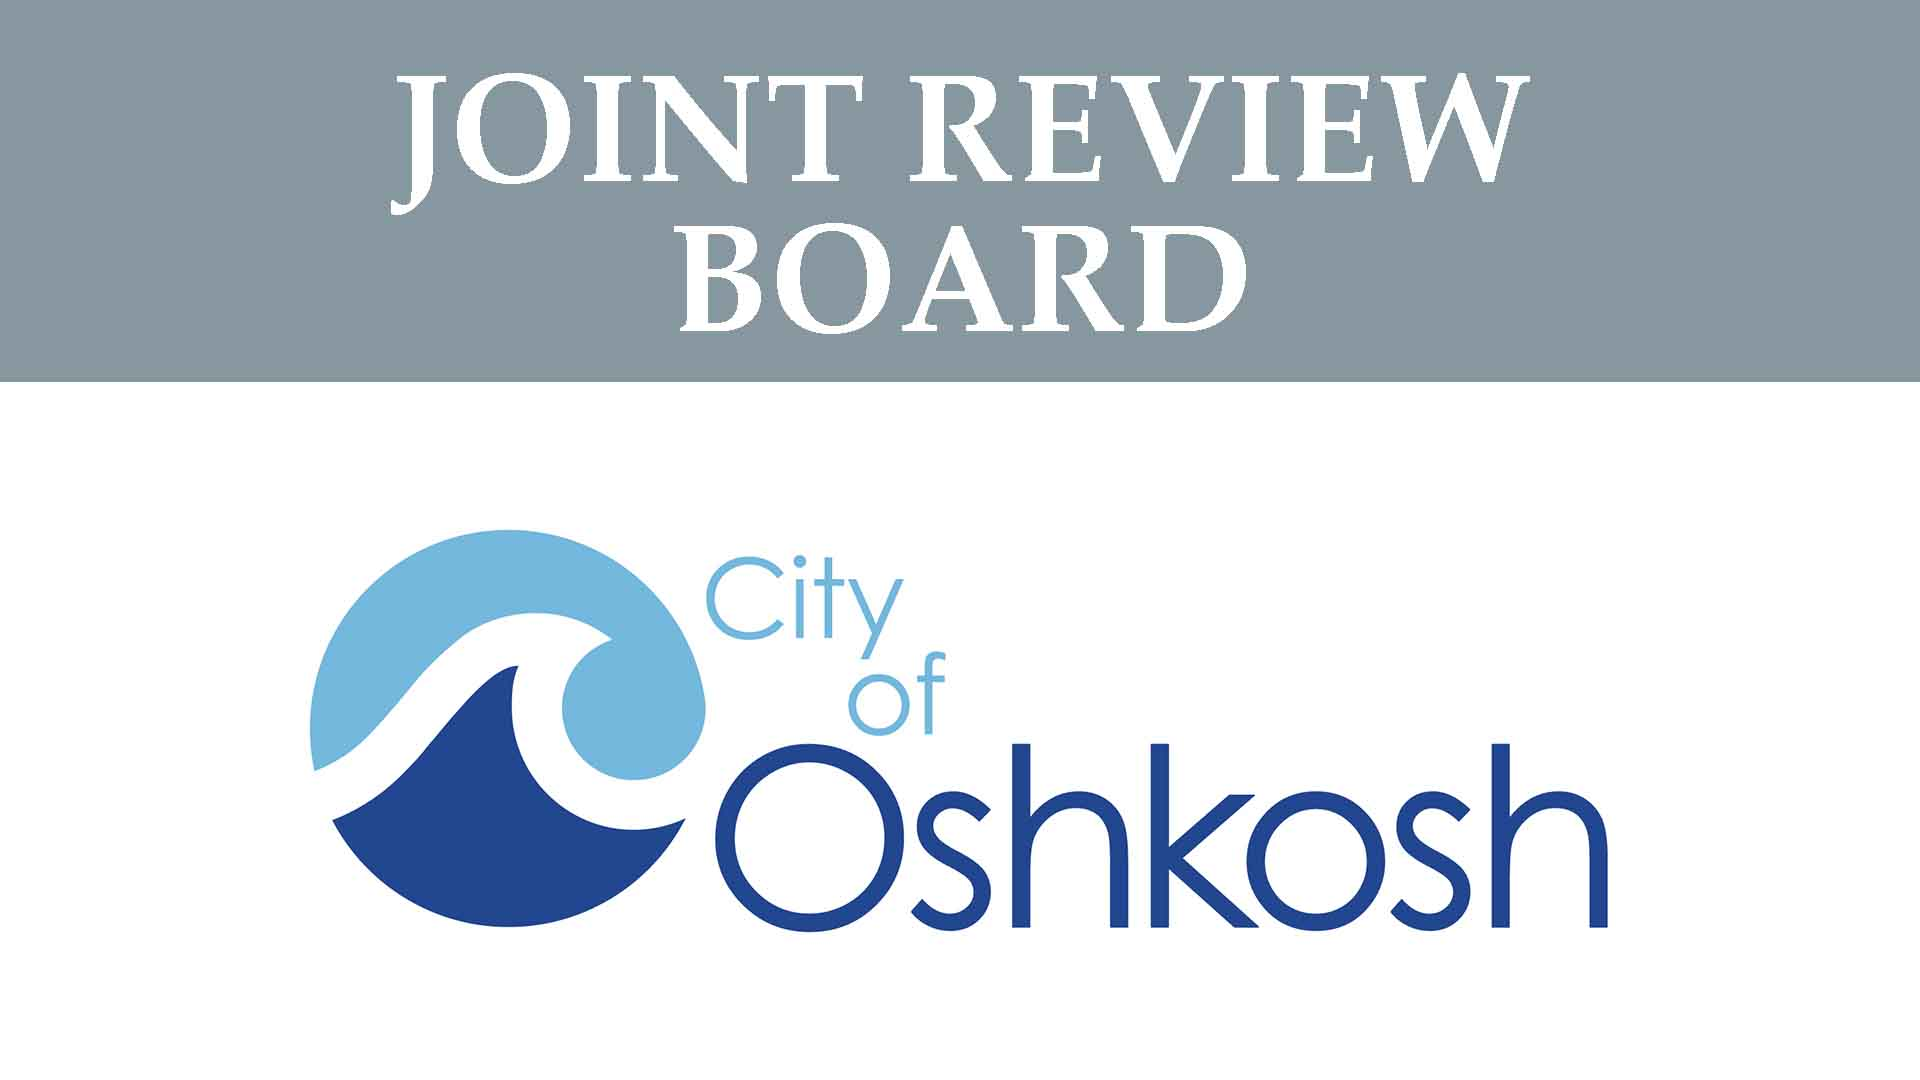 Joint Review Board